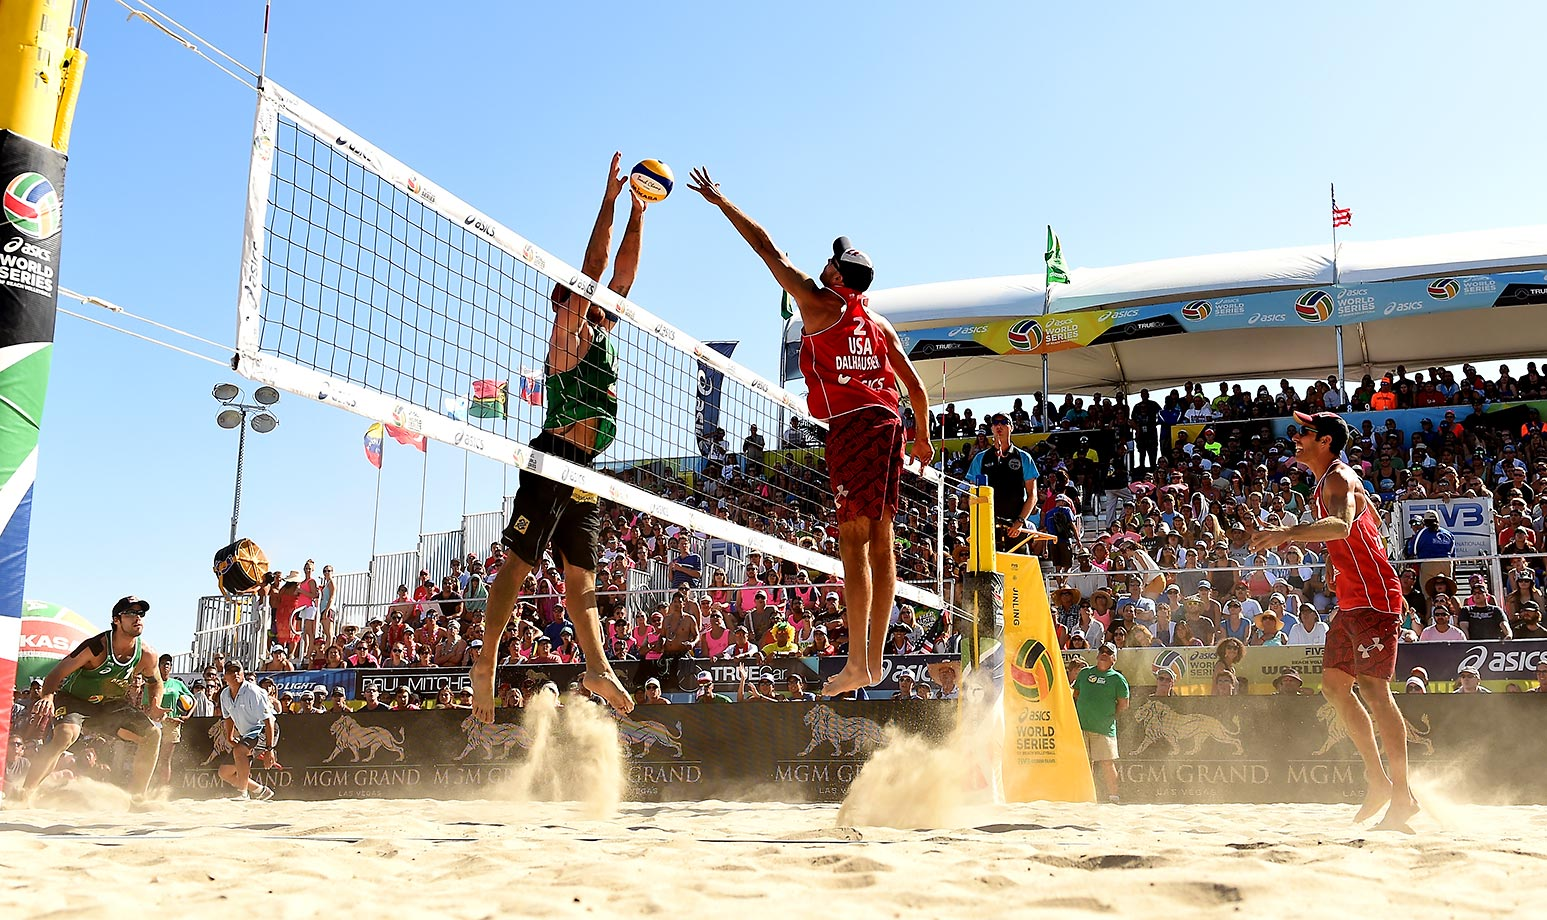 It took the Brazilians three games to put the Americans away. It was the fourth straight win for Cerutti/Schmidt on the FIVB tour.